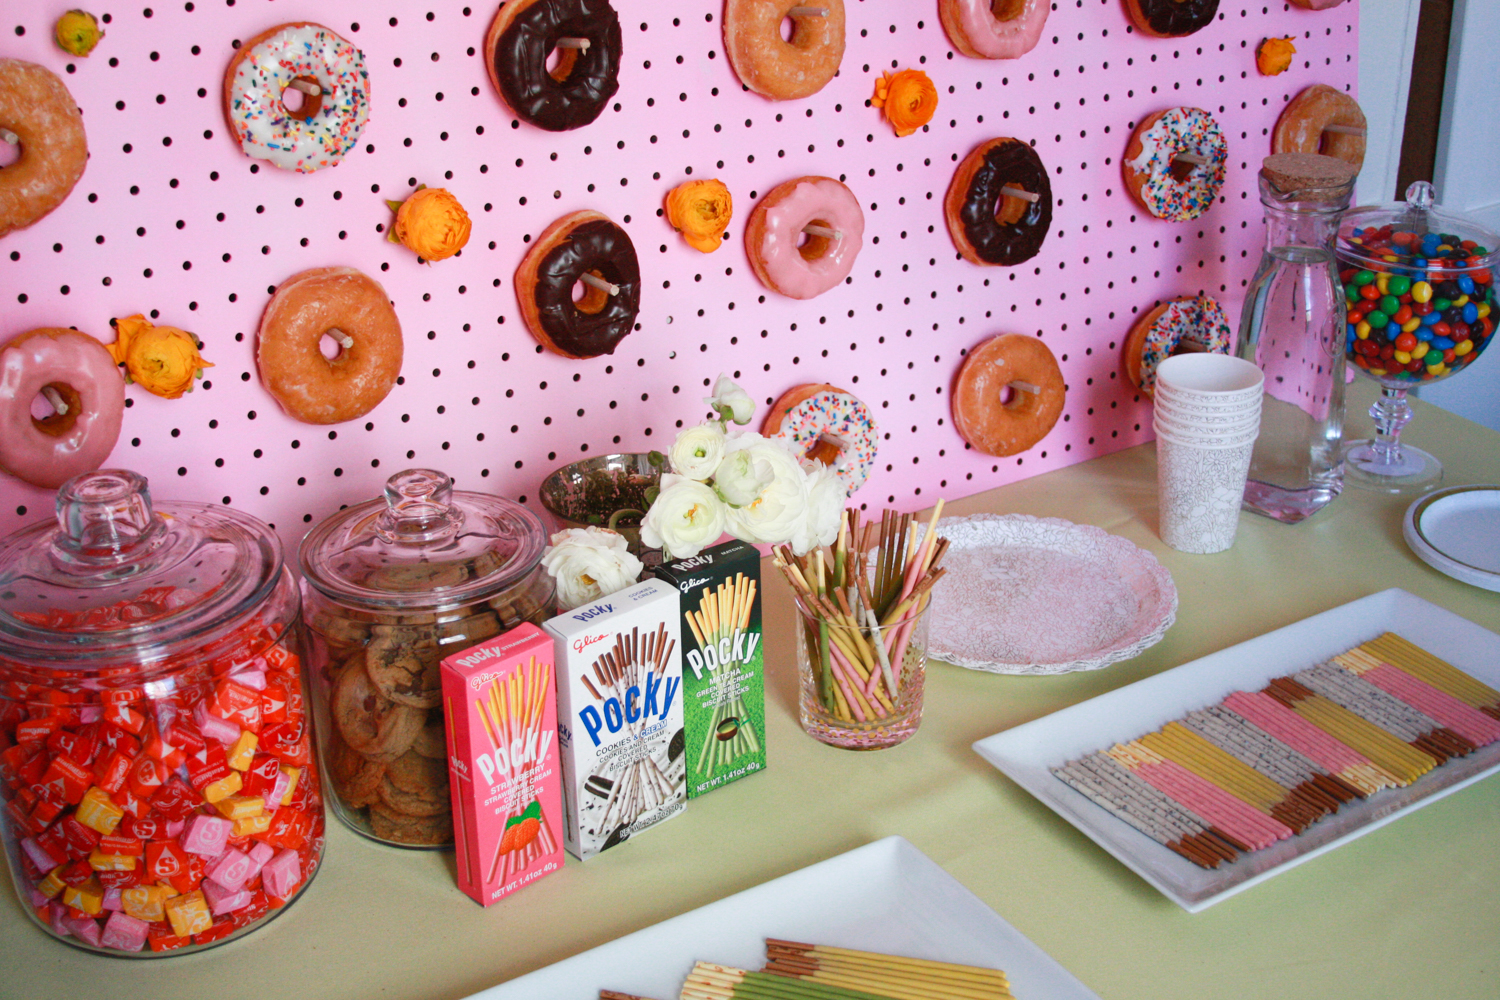 You can't go wrong with a good donut wall DIY!